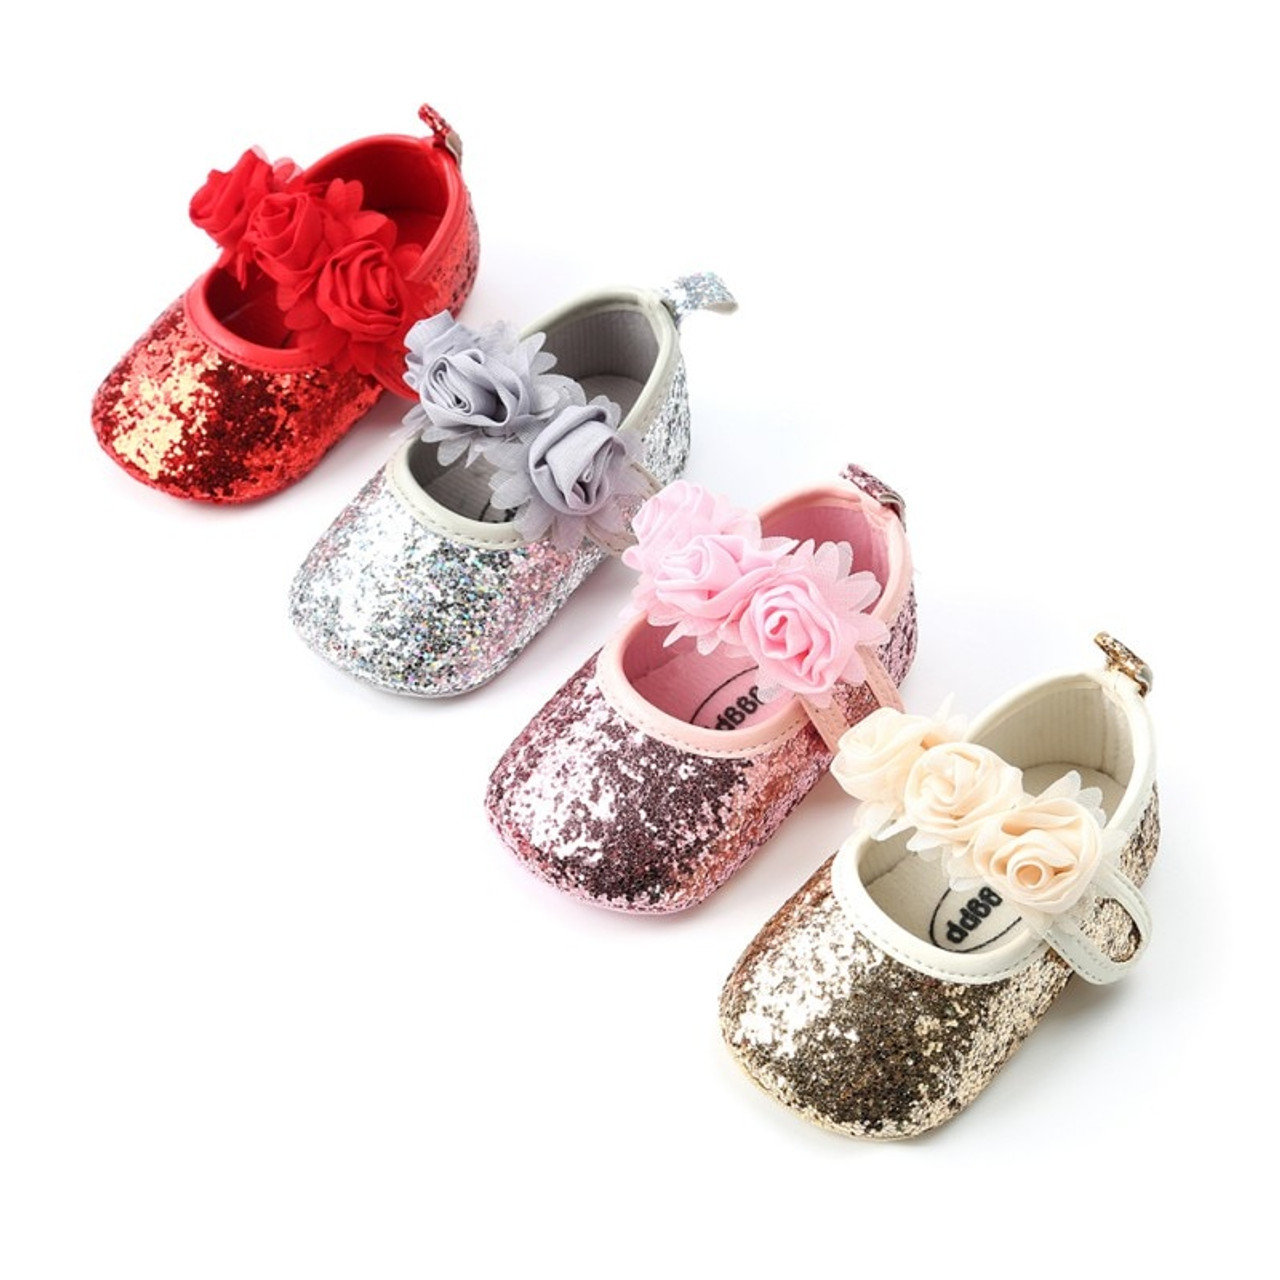 af3f7e8937b76 2018 Baby Shoes PU leather infant baby moccains soft sloe toddler girls  shoes mary jane party shoes first walkers Floral